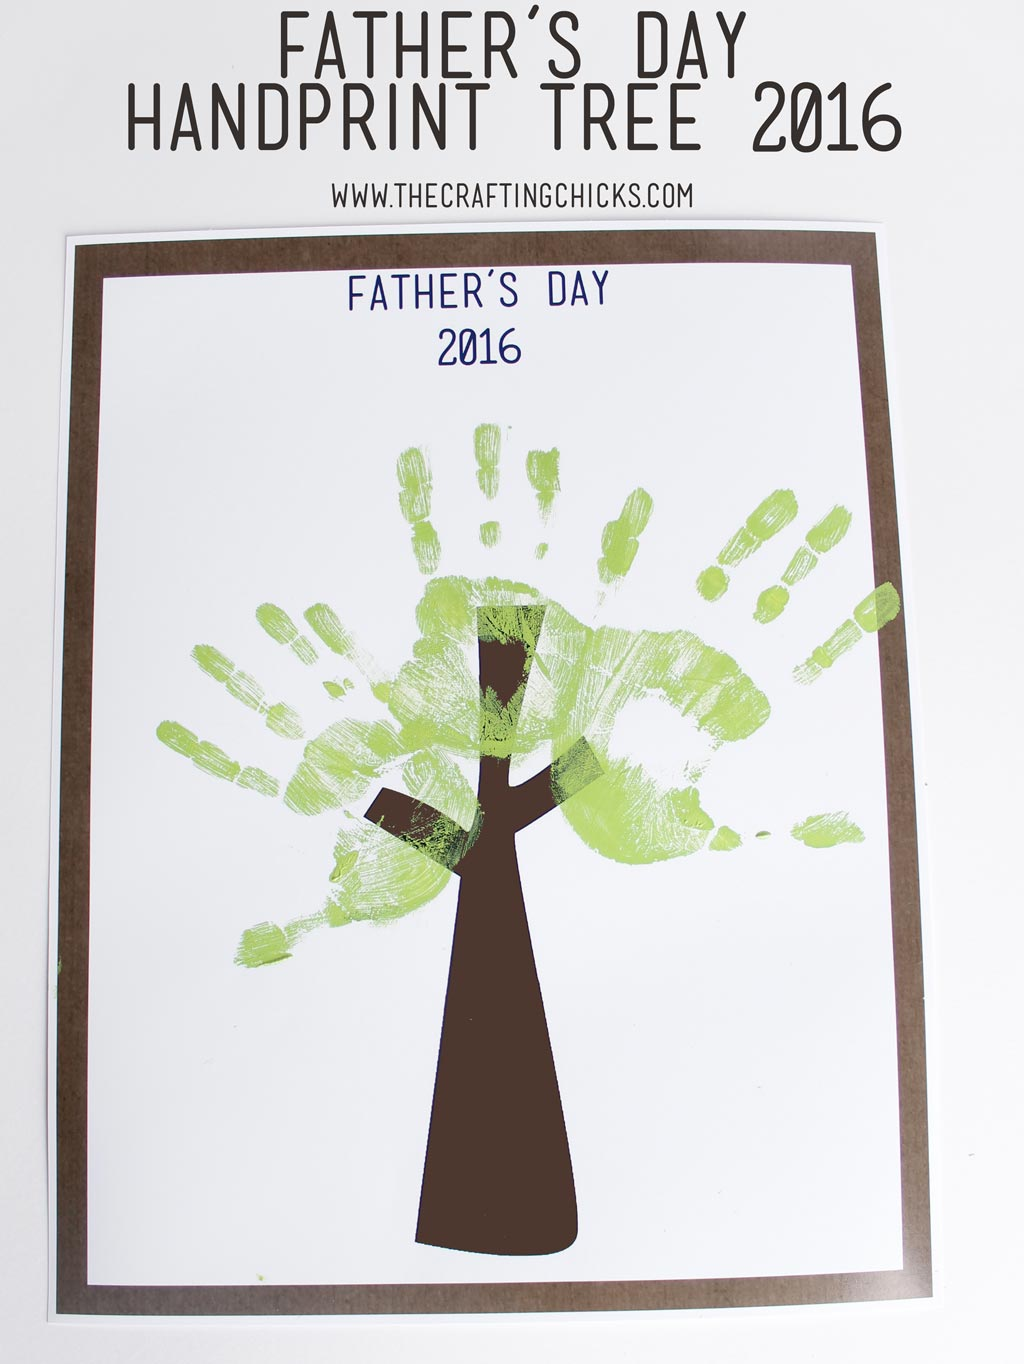 Father's Day Handprint Tree 2016